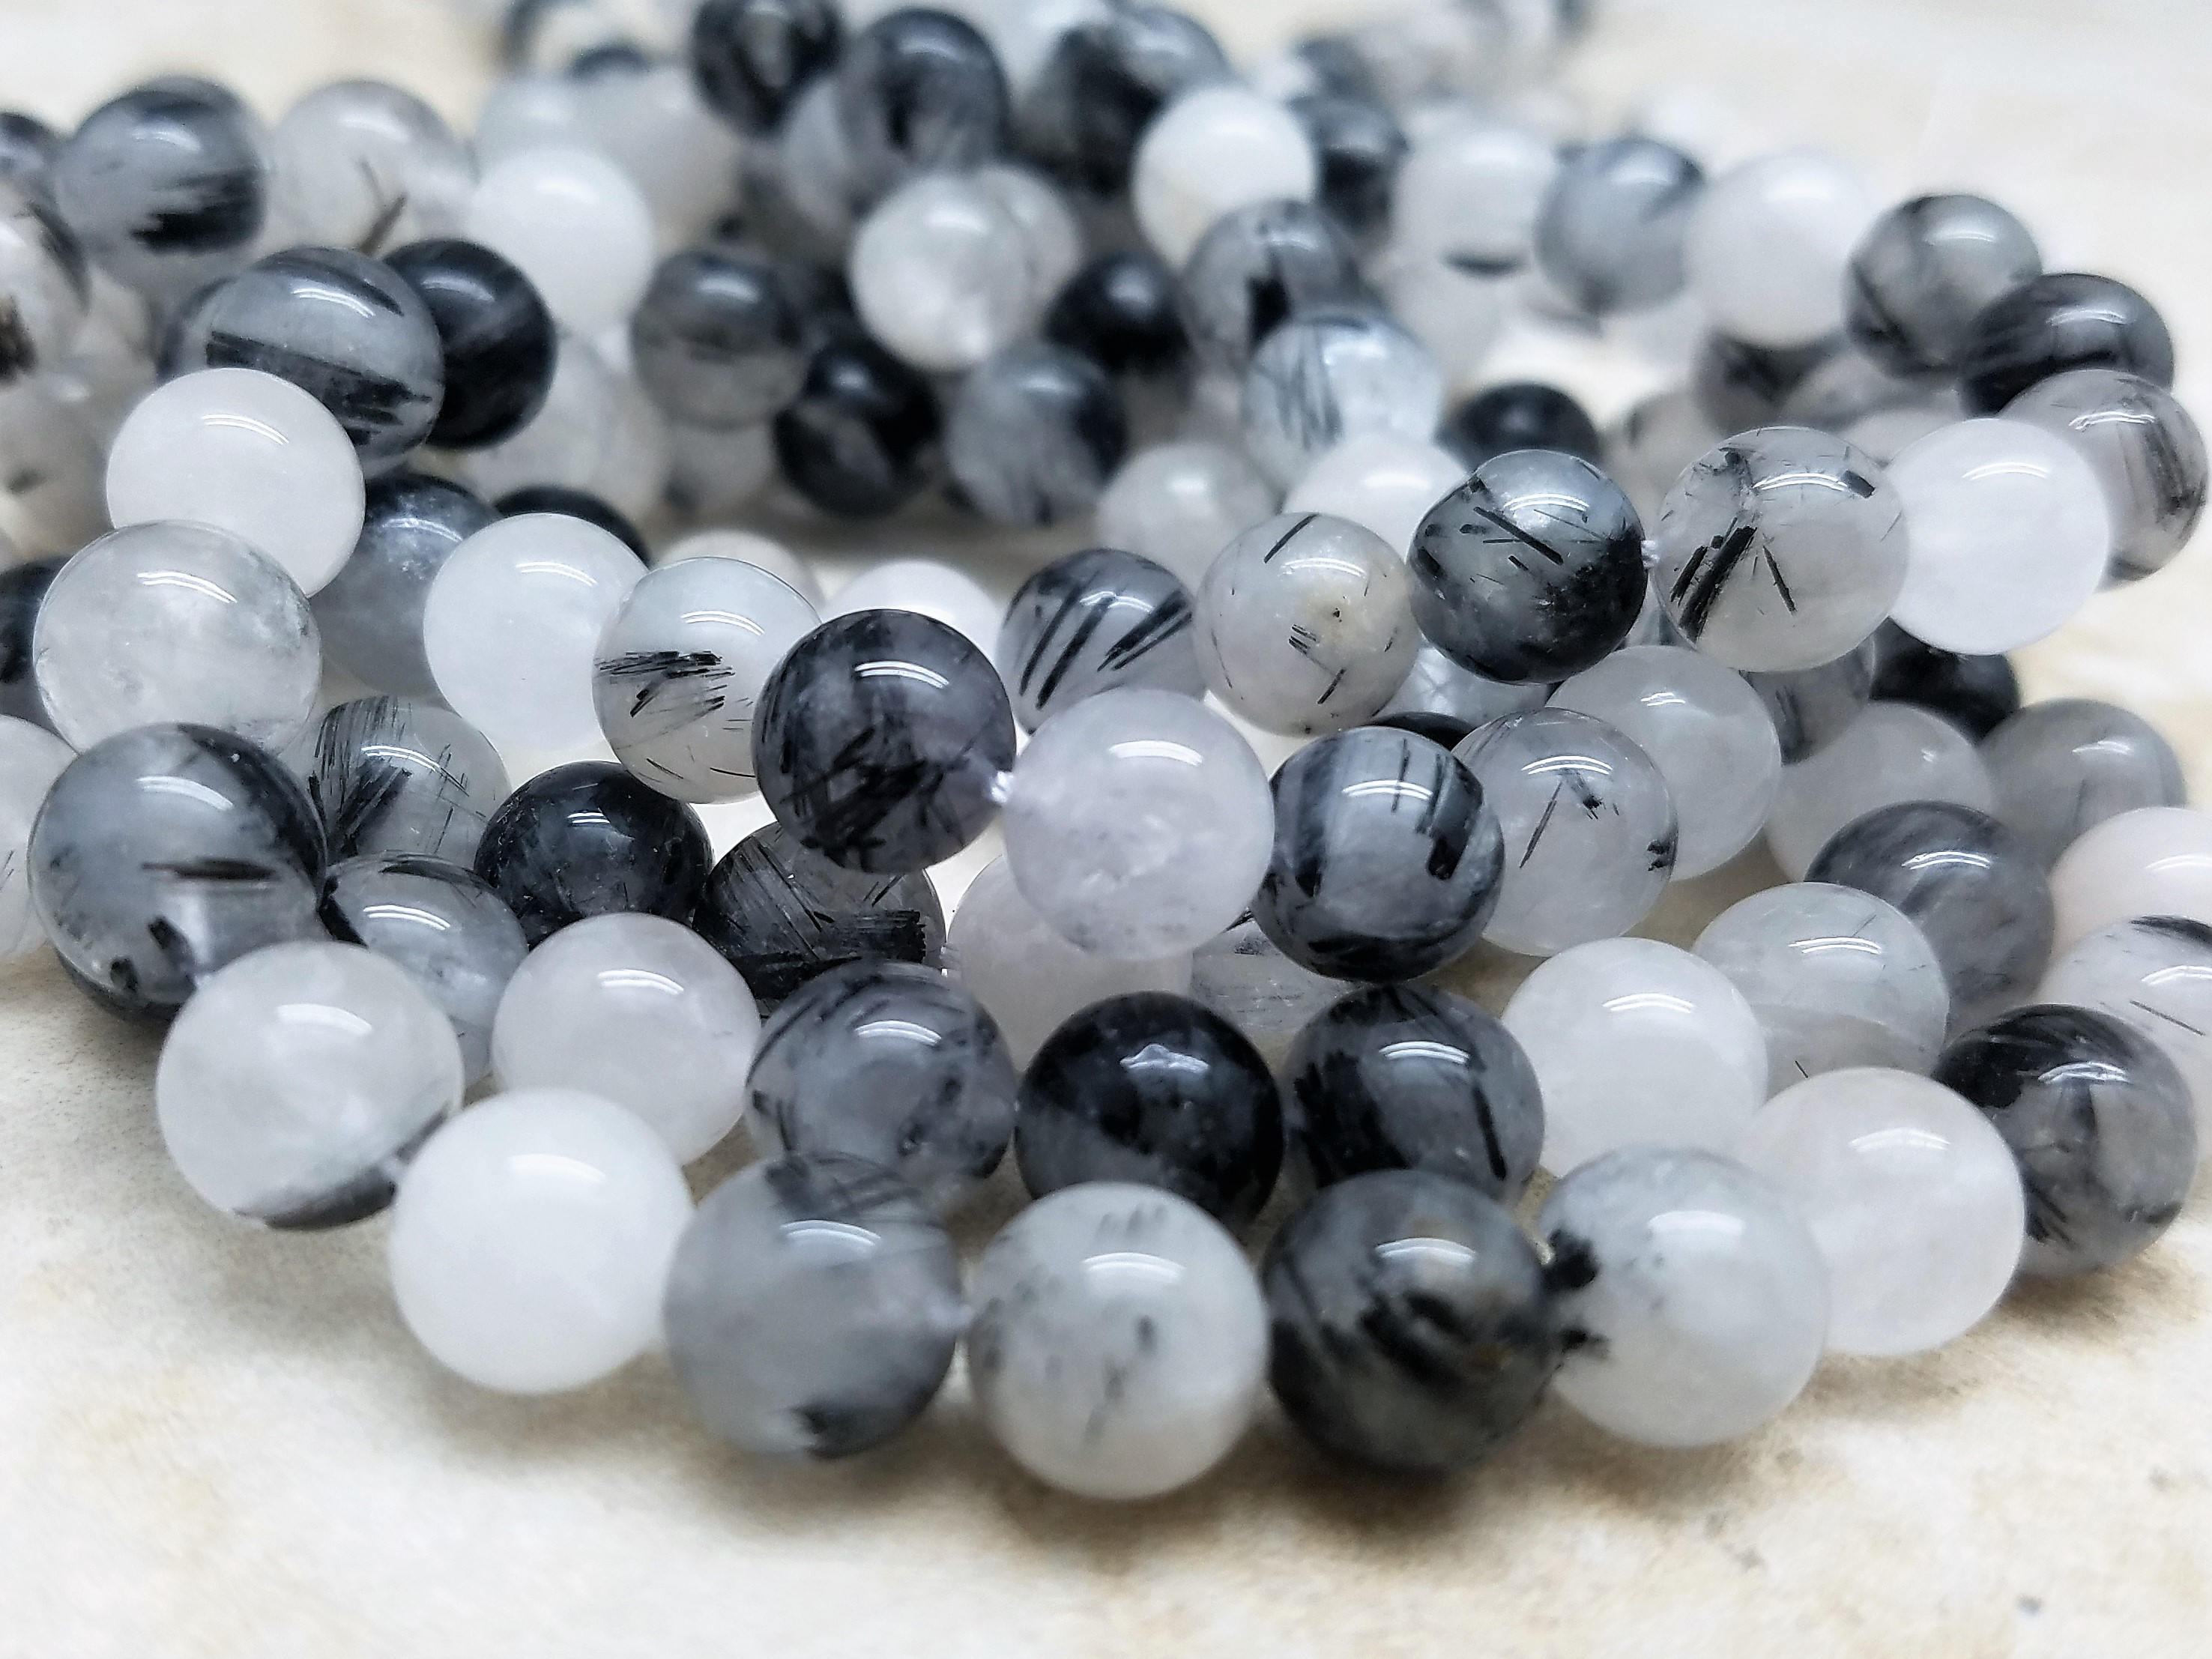 4mm or 6mm or 8mm Black Rutile Quartz Polished Round Beads, 15 inch